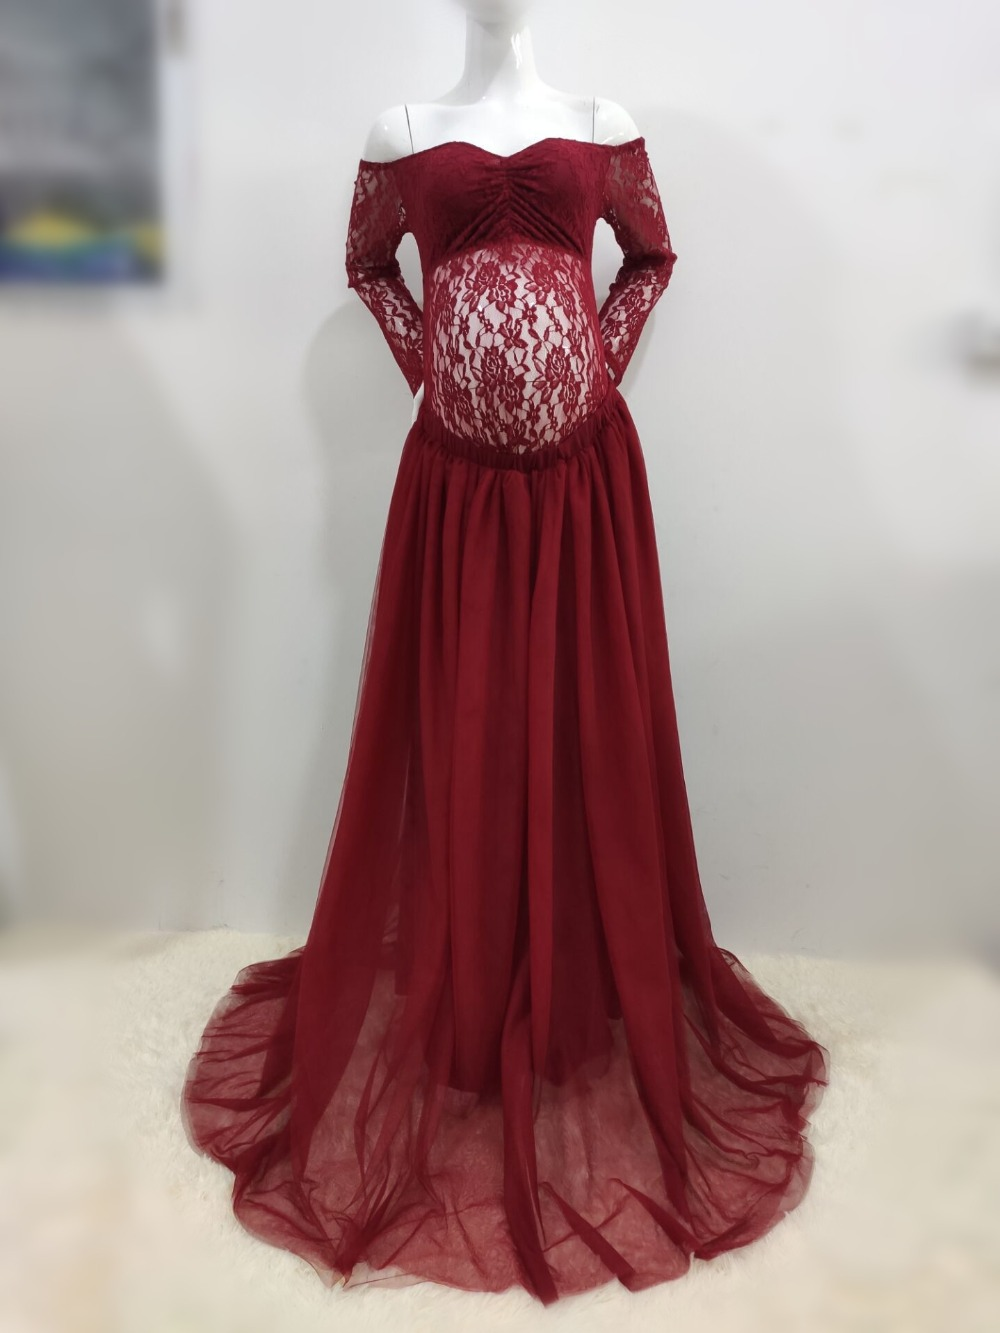 Sexy Lace Maternity Photography Props Long Dress Baby Shower Fancy Pregnancy Dress Photo Shoot For Pregnant Women Mesh Maxi Gown (16)